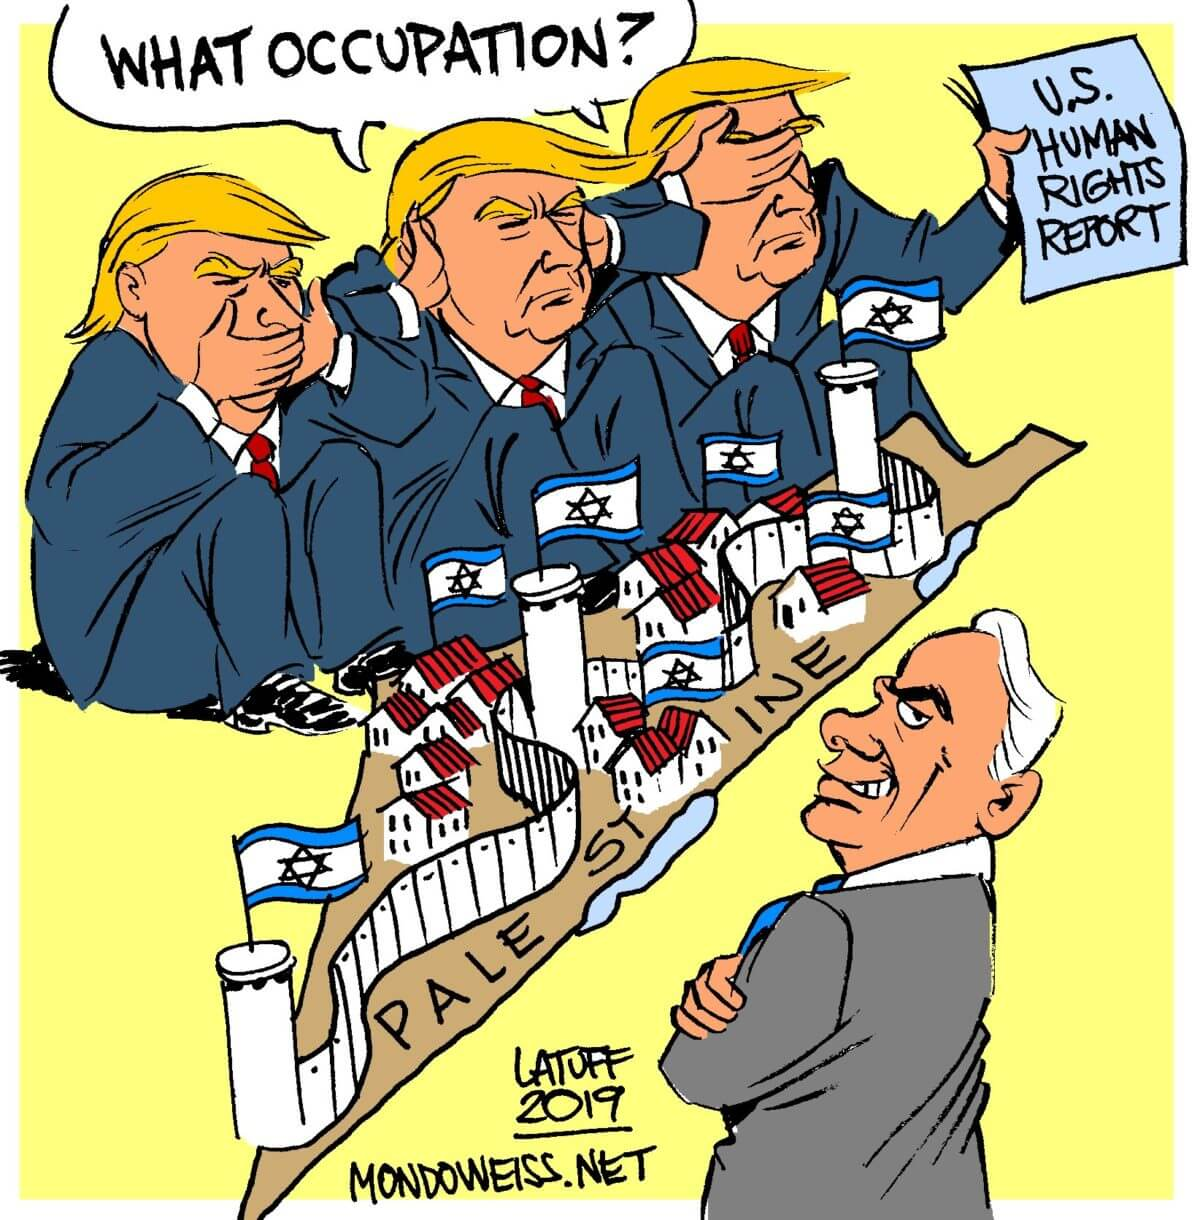 US human rights report occupation Israel Palestine